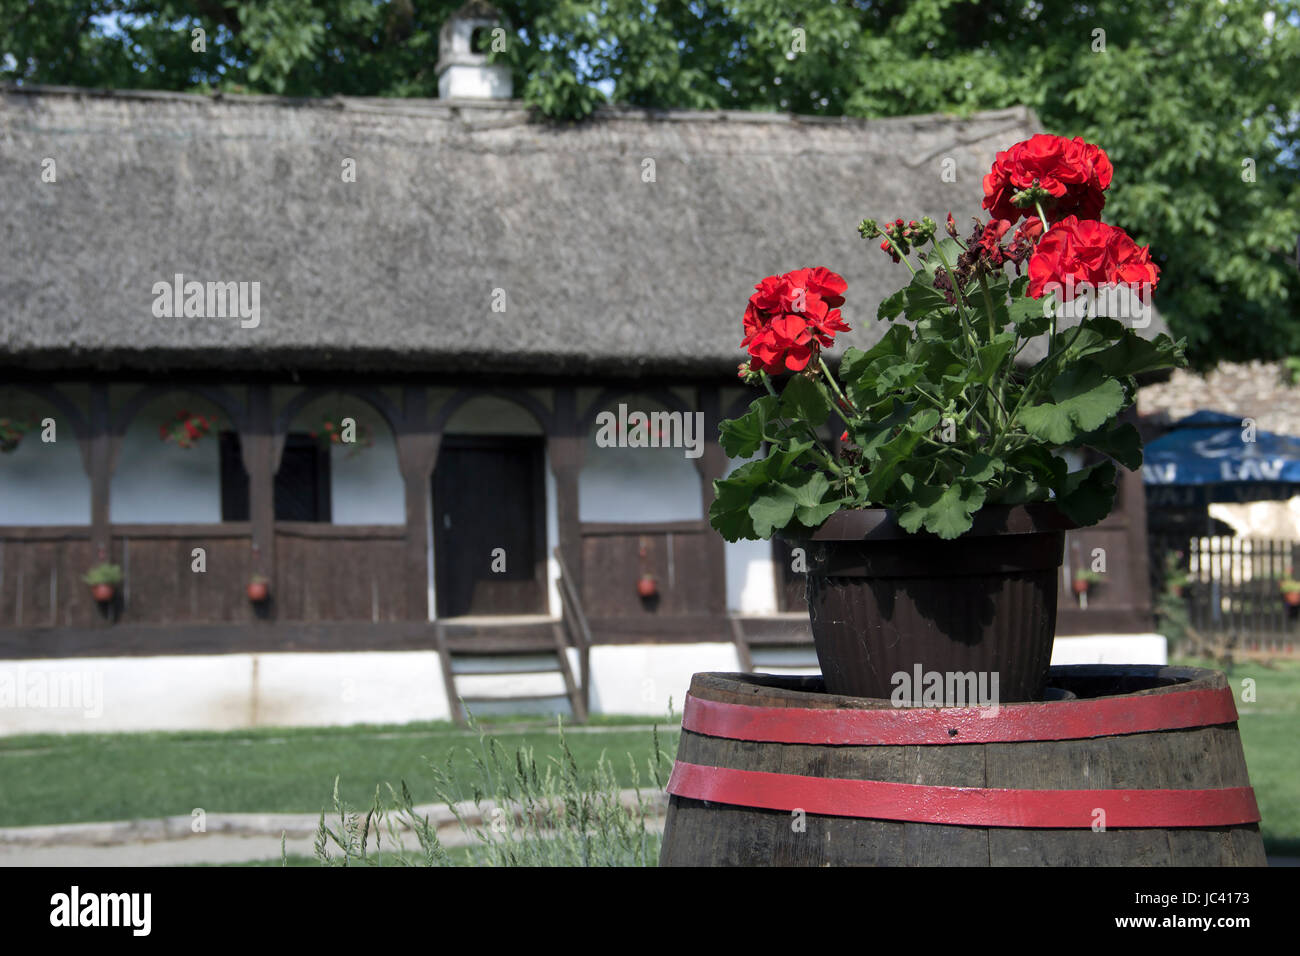 Countryside, Serbia - A pot of the Red Geraniums on a wooden barrel in front of the traditional thatched roof village - Stock Image